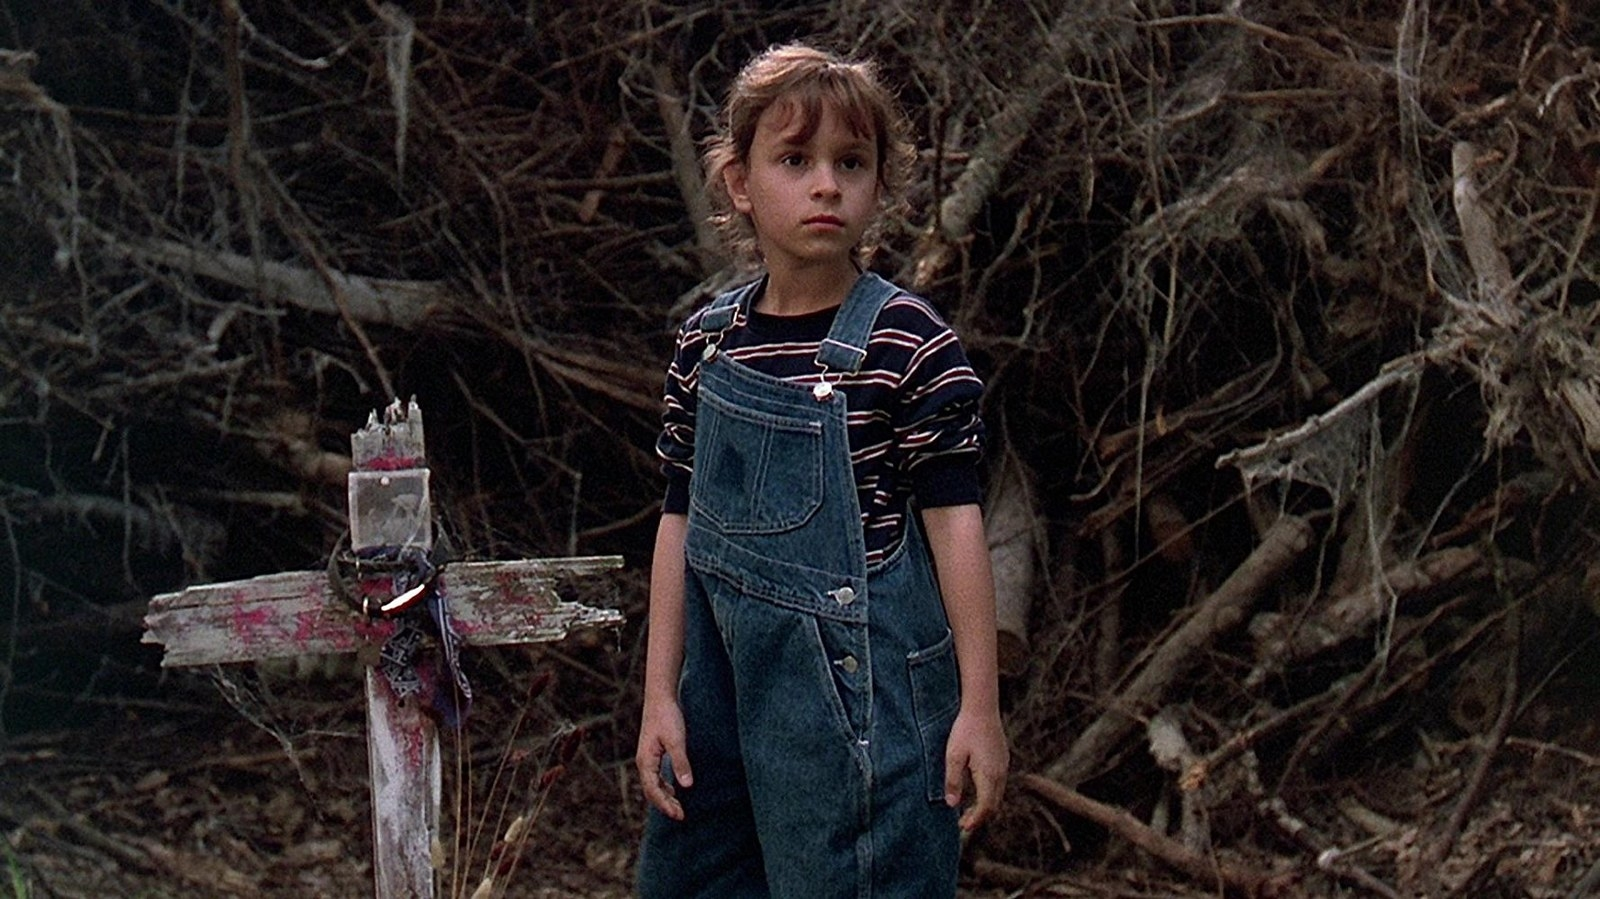 Premise Pet Sematary follows a doctor who moves his family out of the big city to the country There he discovers that they have moved near a pet cemetery that